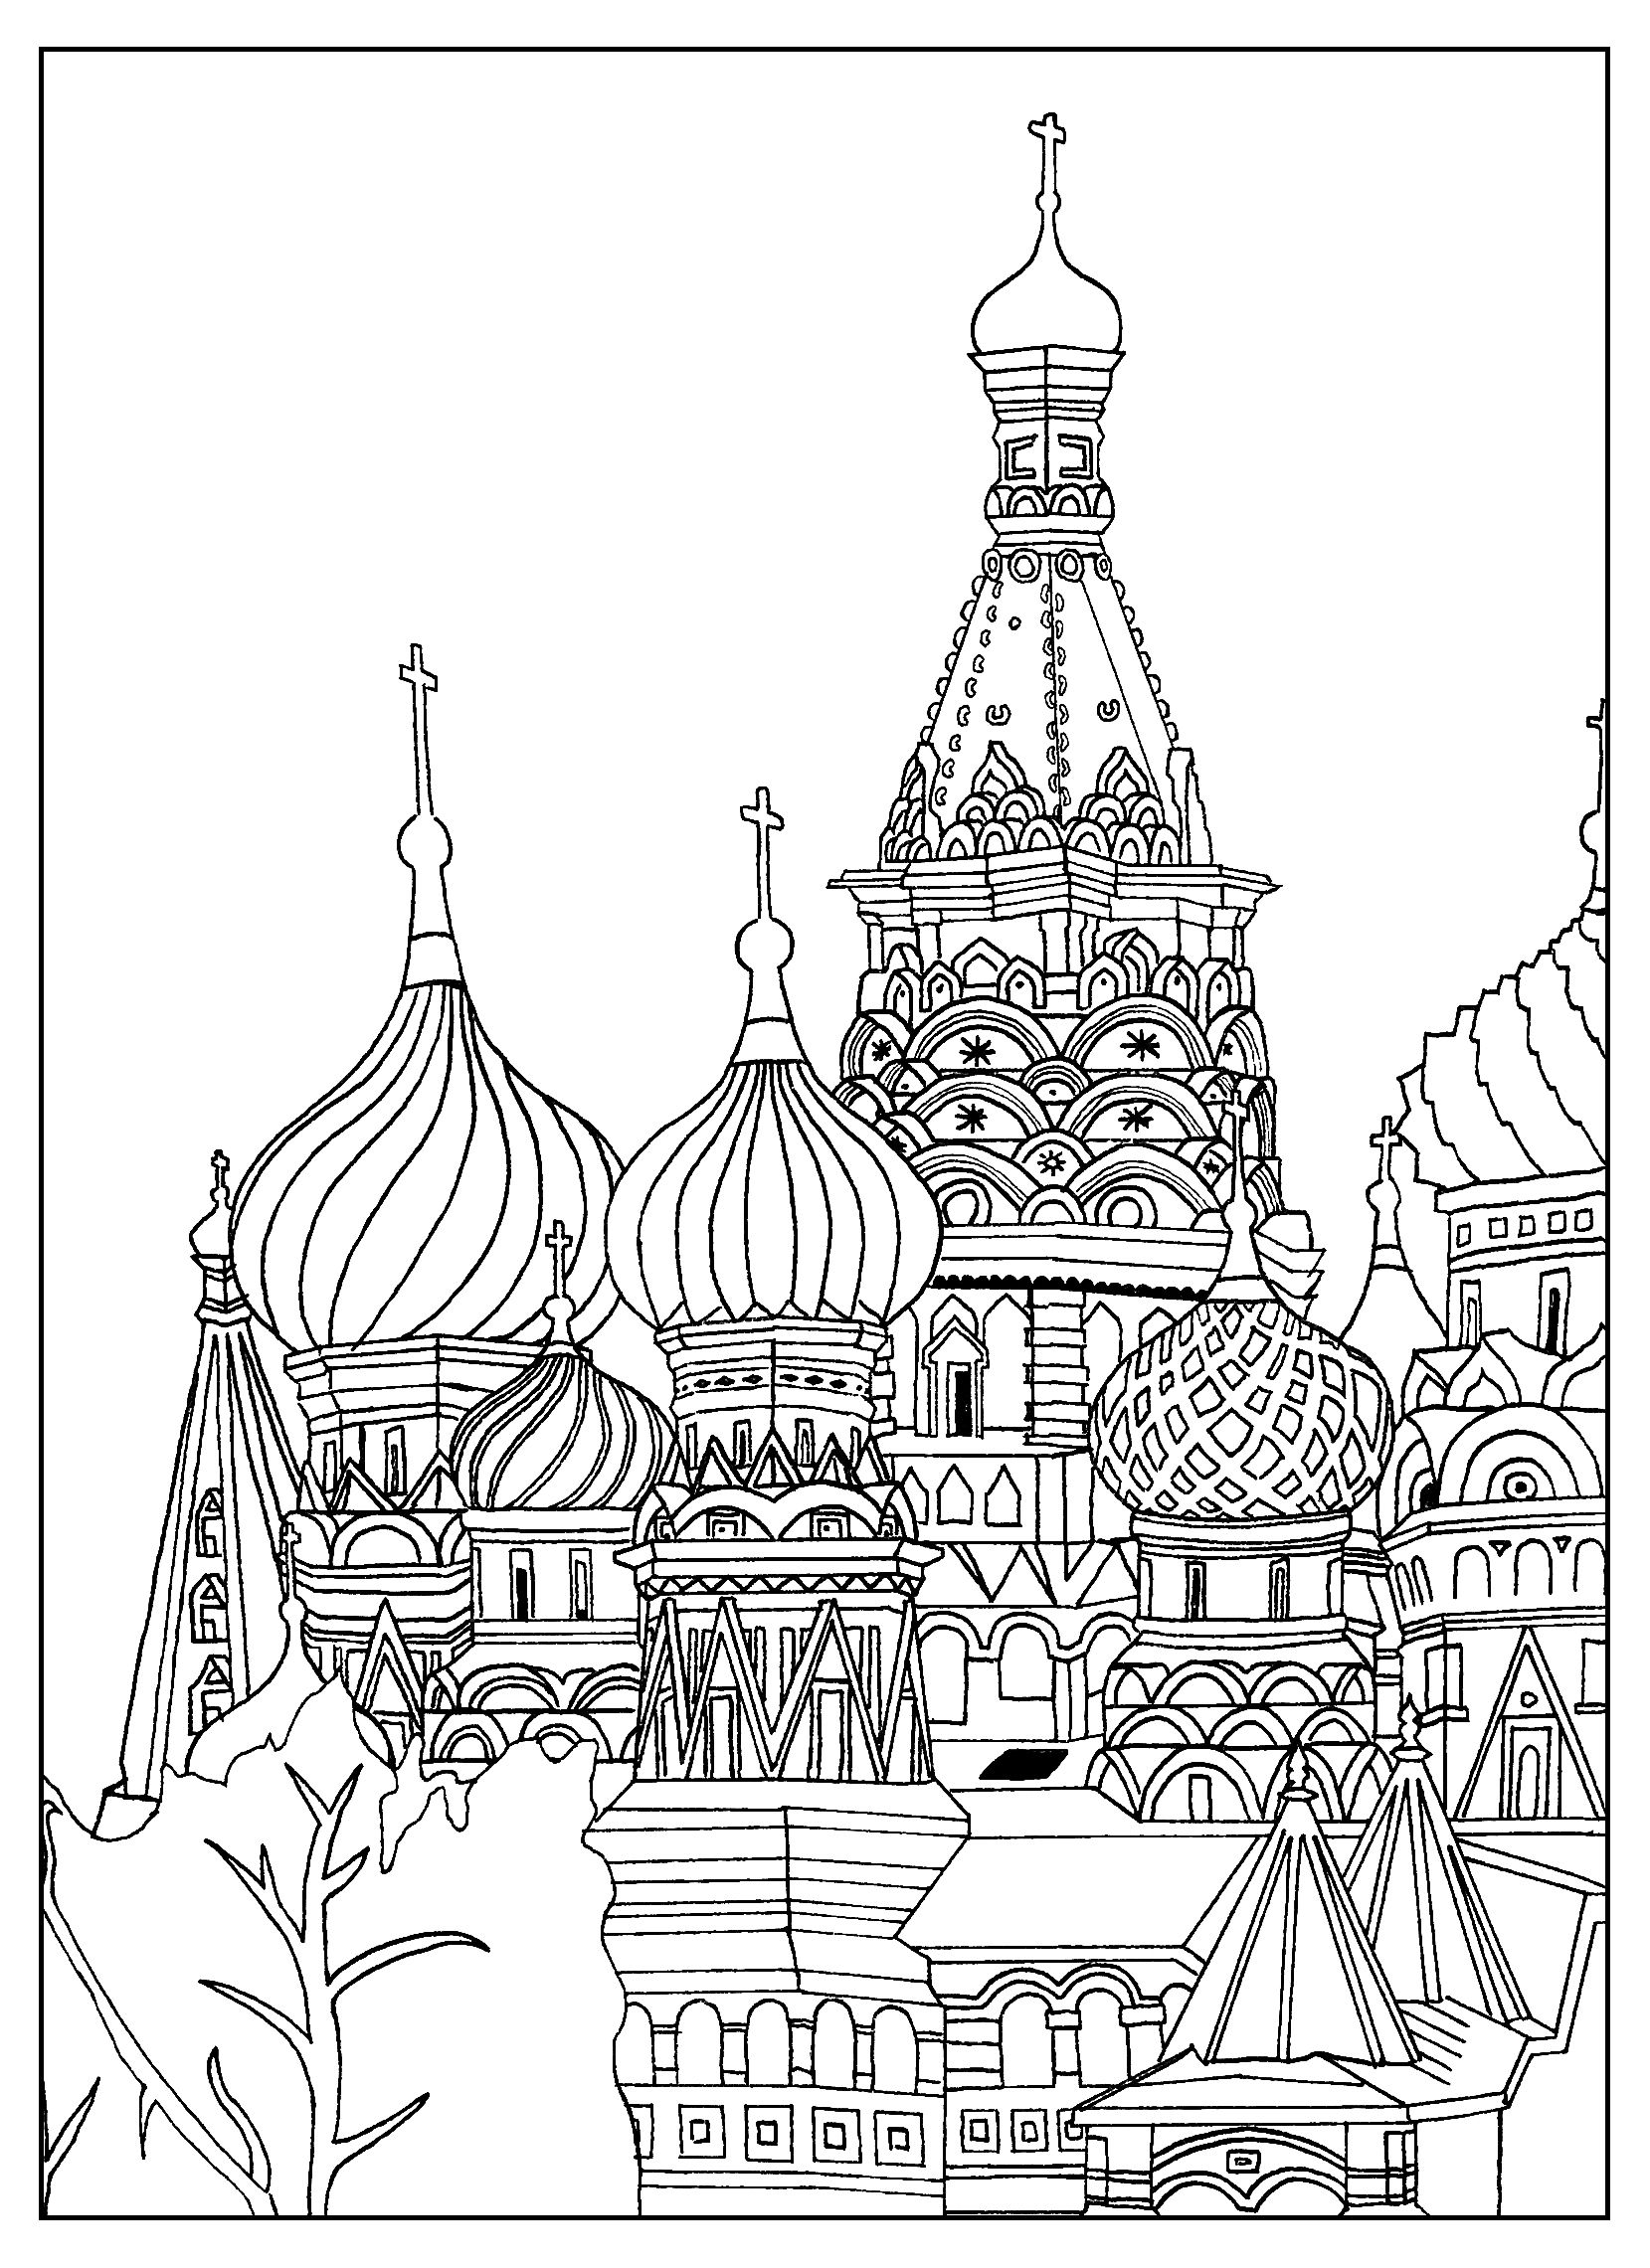 Free Adult Coloring Page Of The Saint Basil S Cathedral In Red Square In Moscow By Sofian